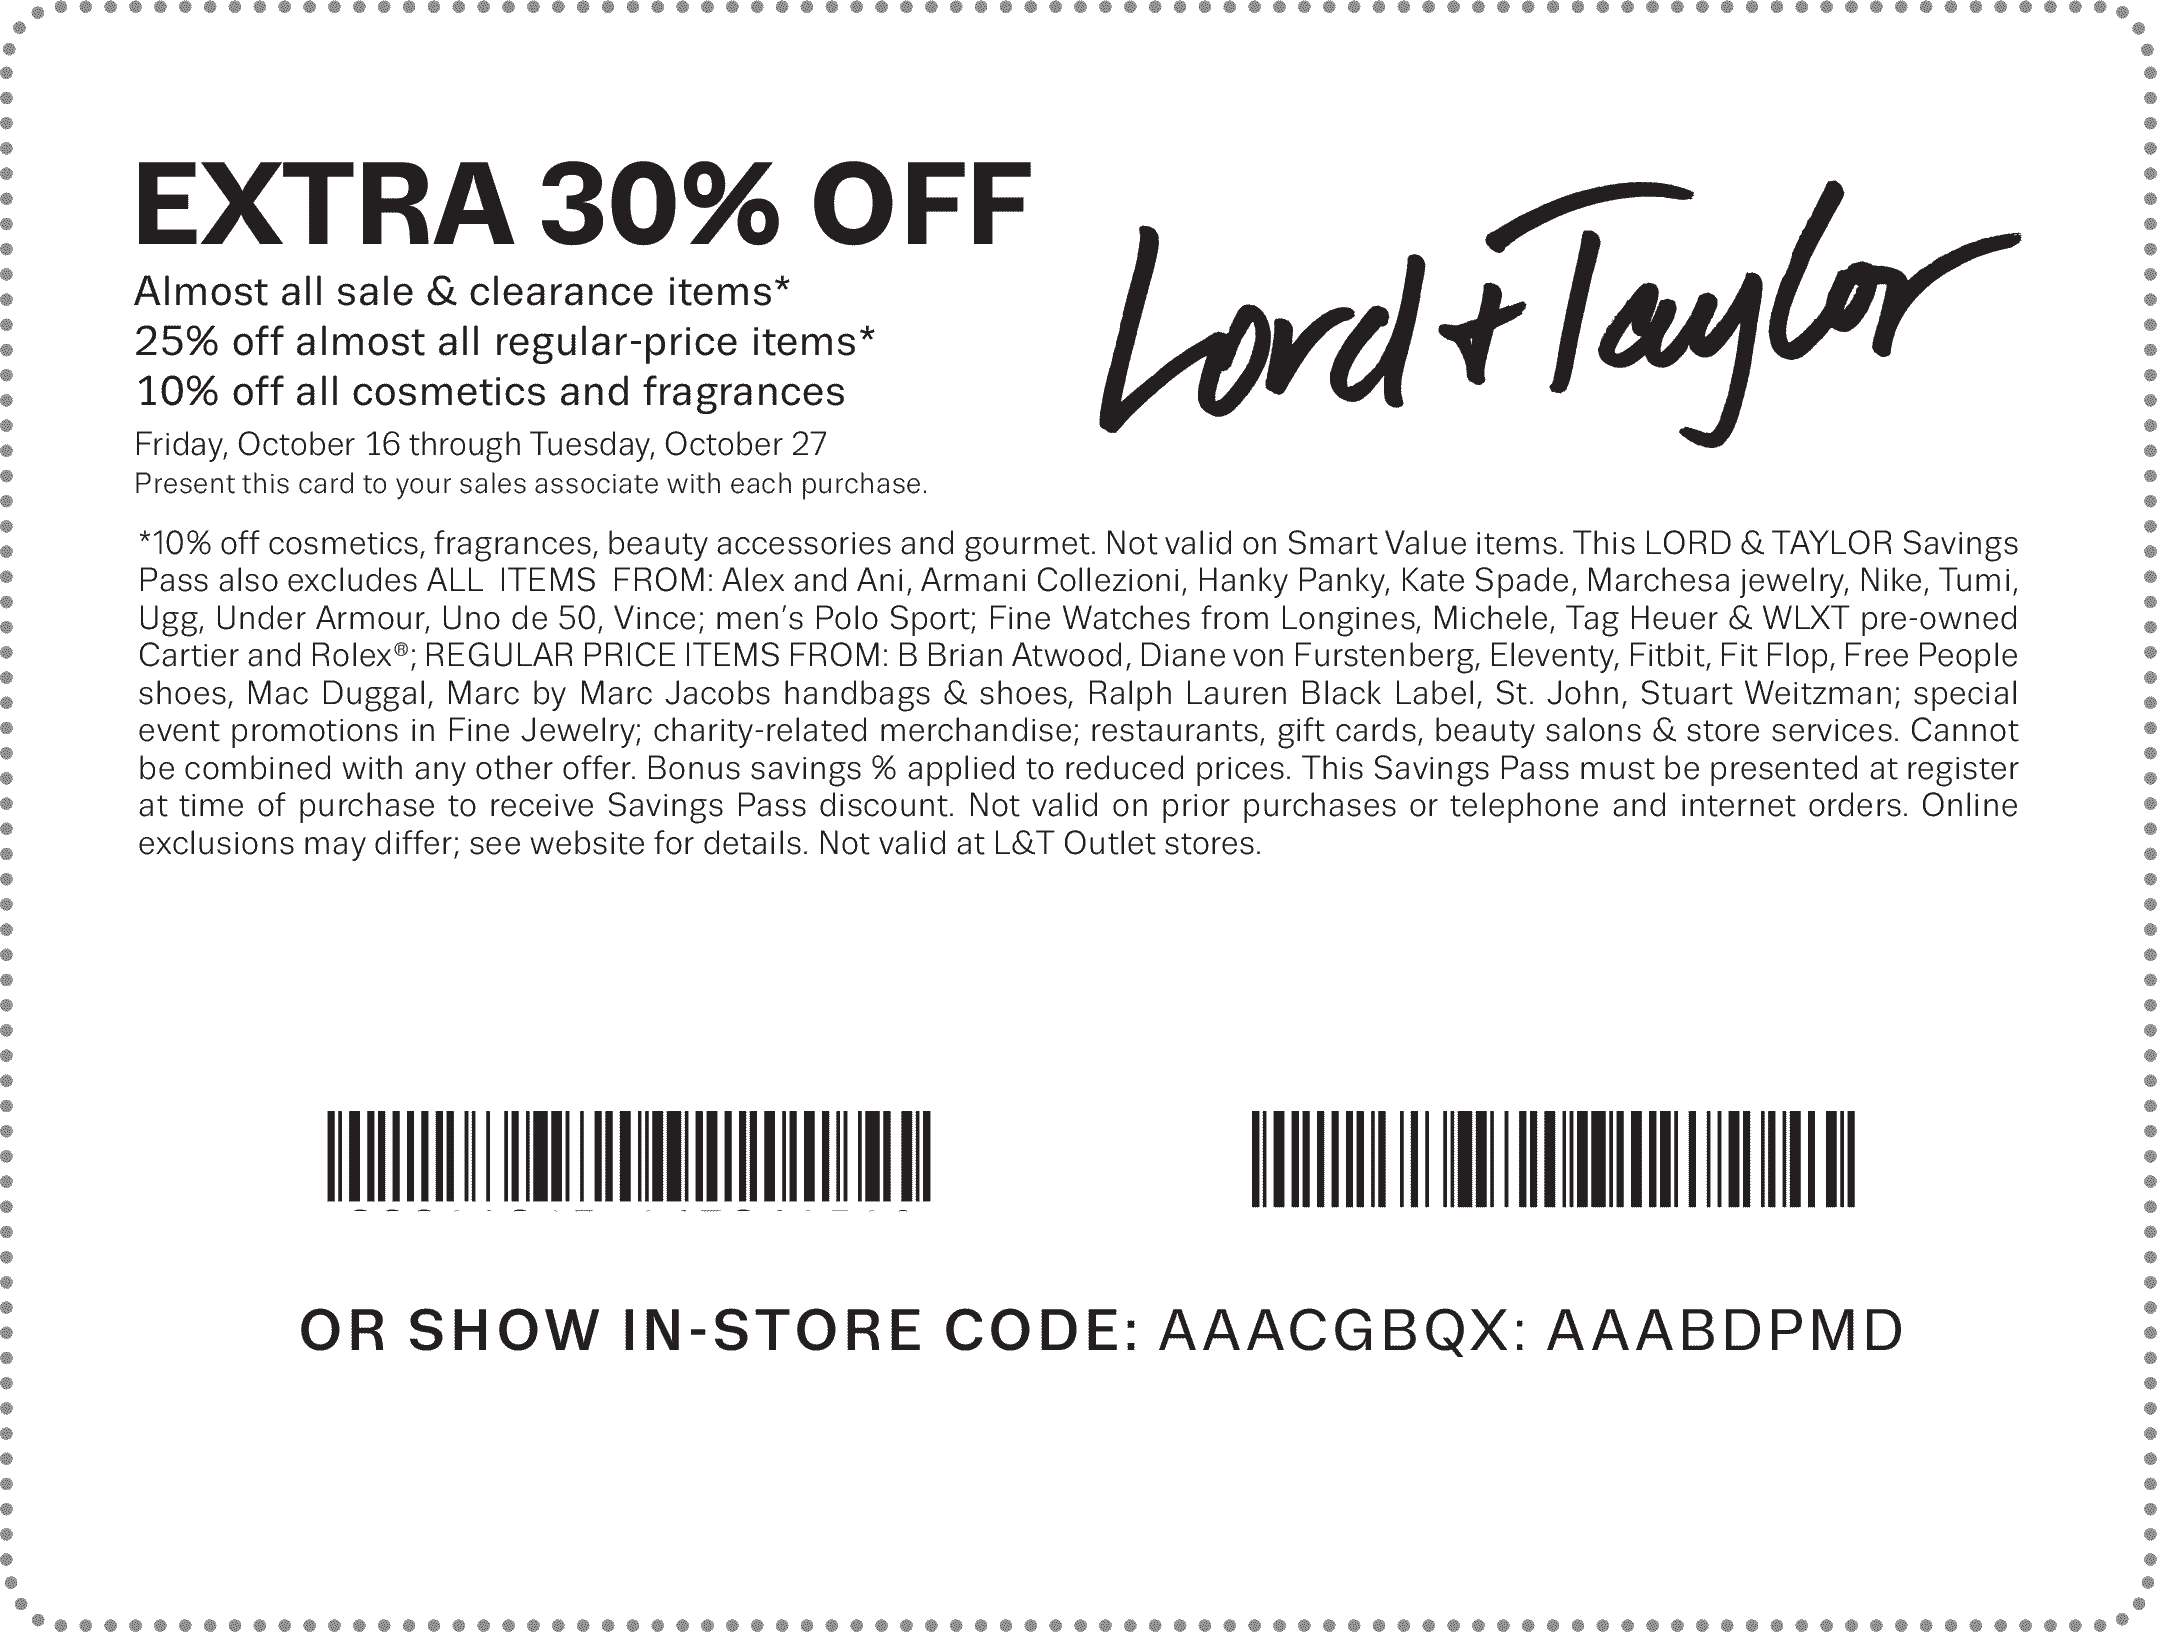 Lord & Taylor Coupon October 2016 Extra 30% off at Lord & Taylor, or online via promo code FRIENDS